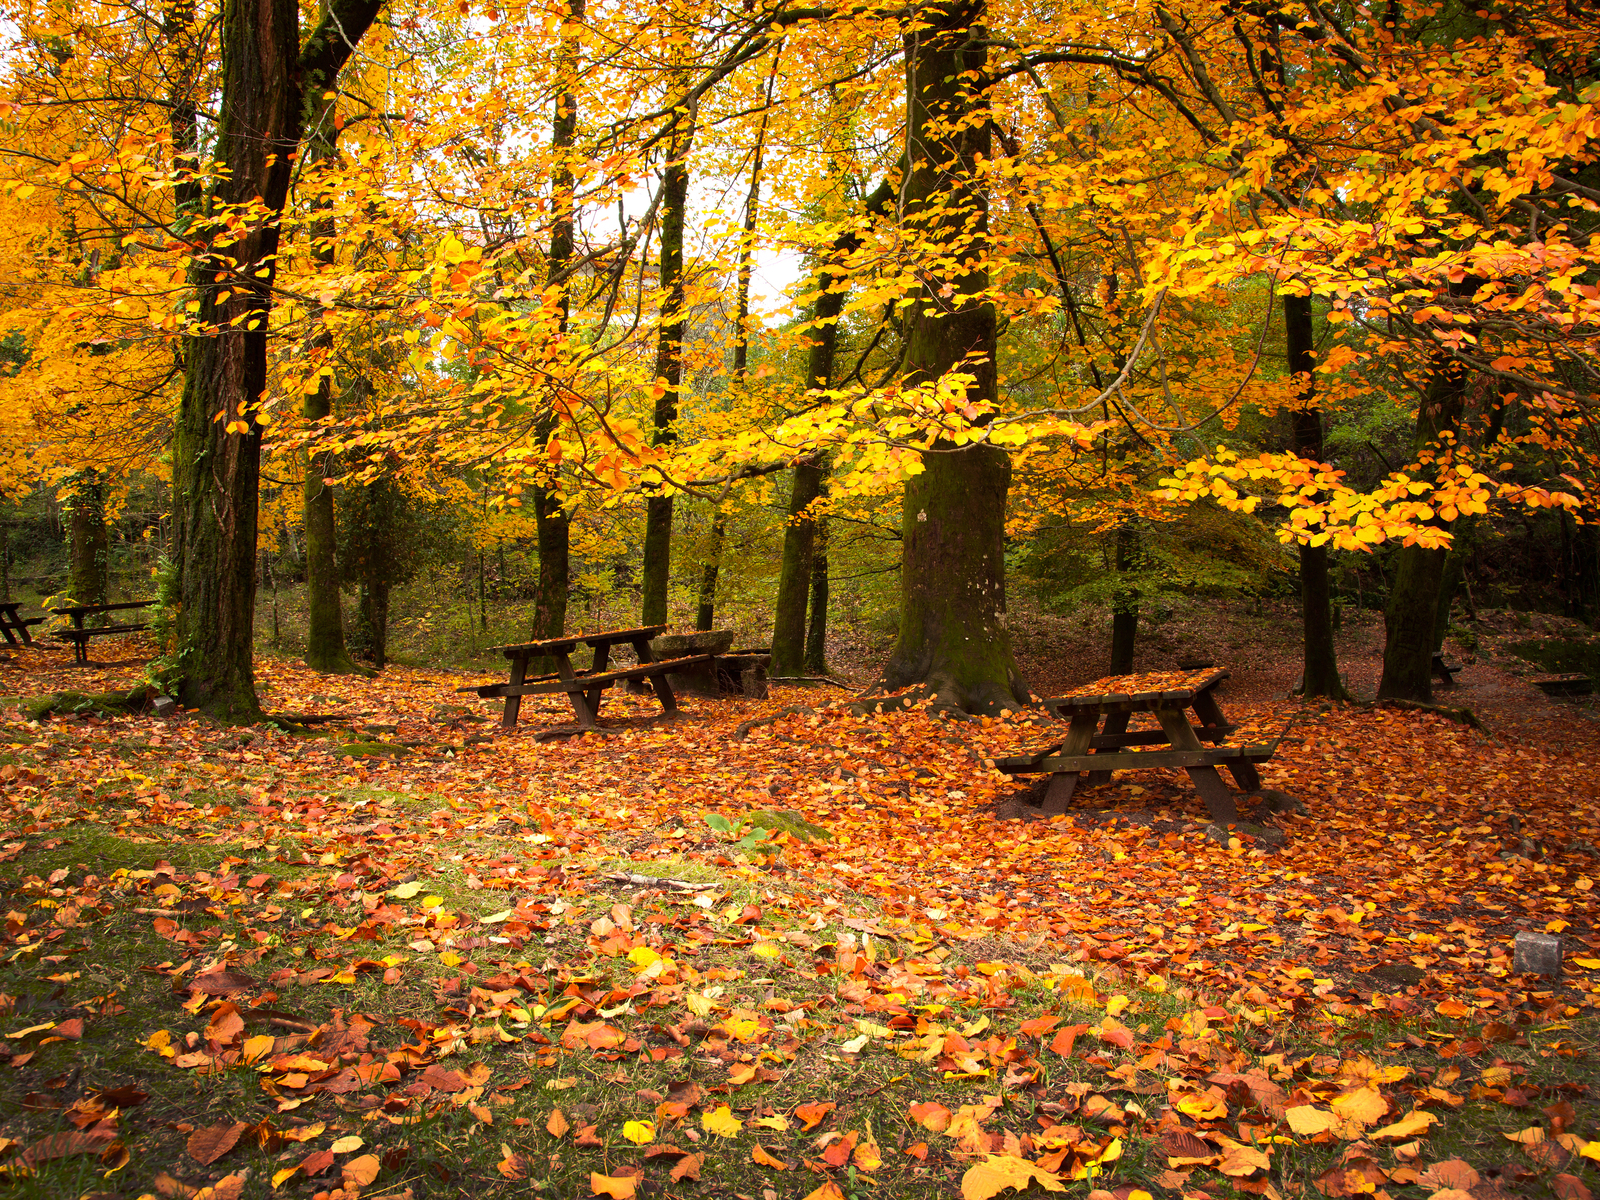 Leaves Wooden Benches Autumn HD Wallpaper HD Nature Wallpapers 1600x1200